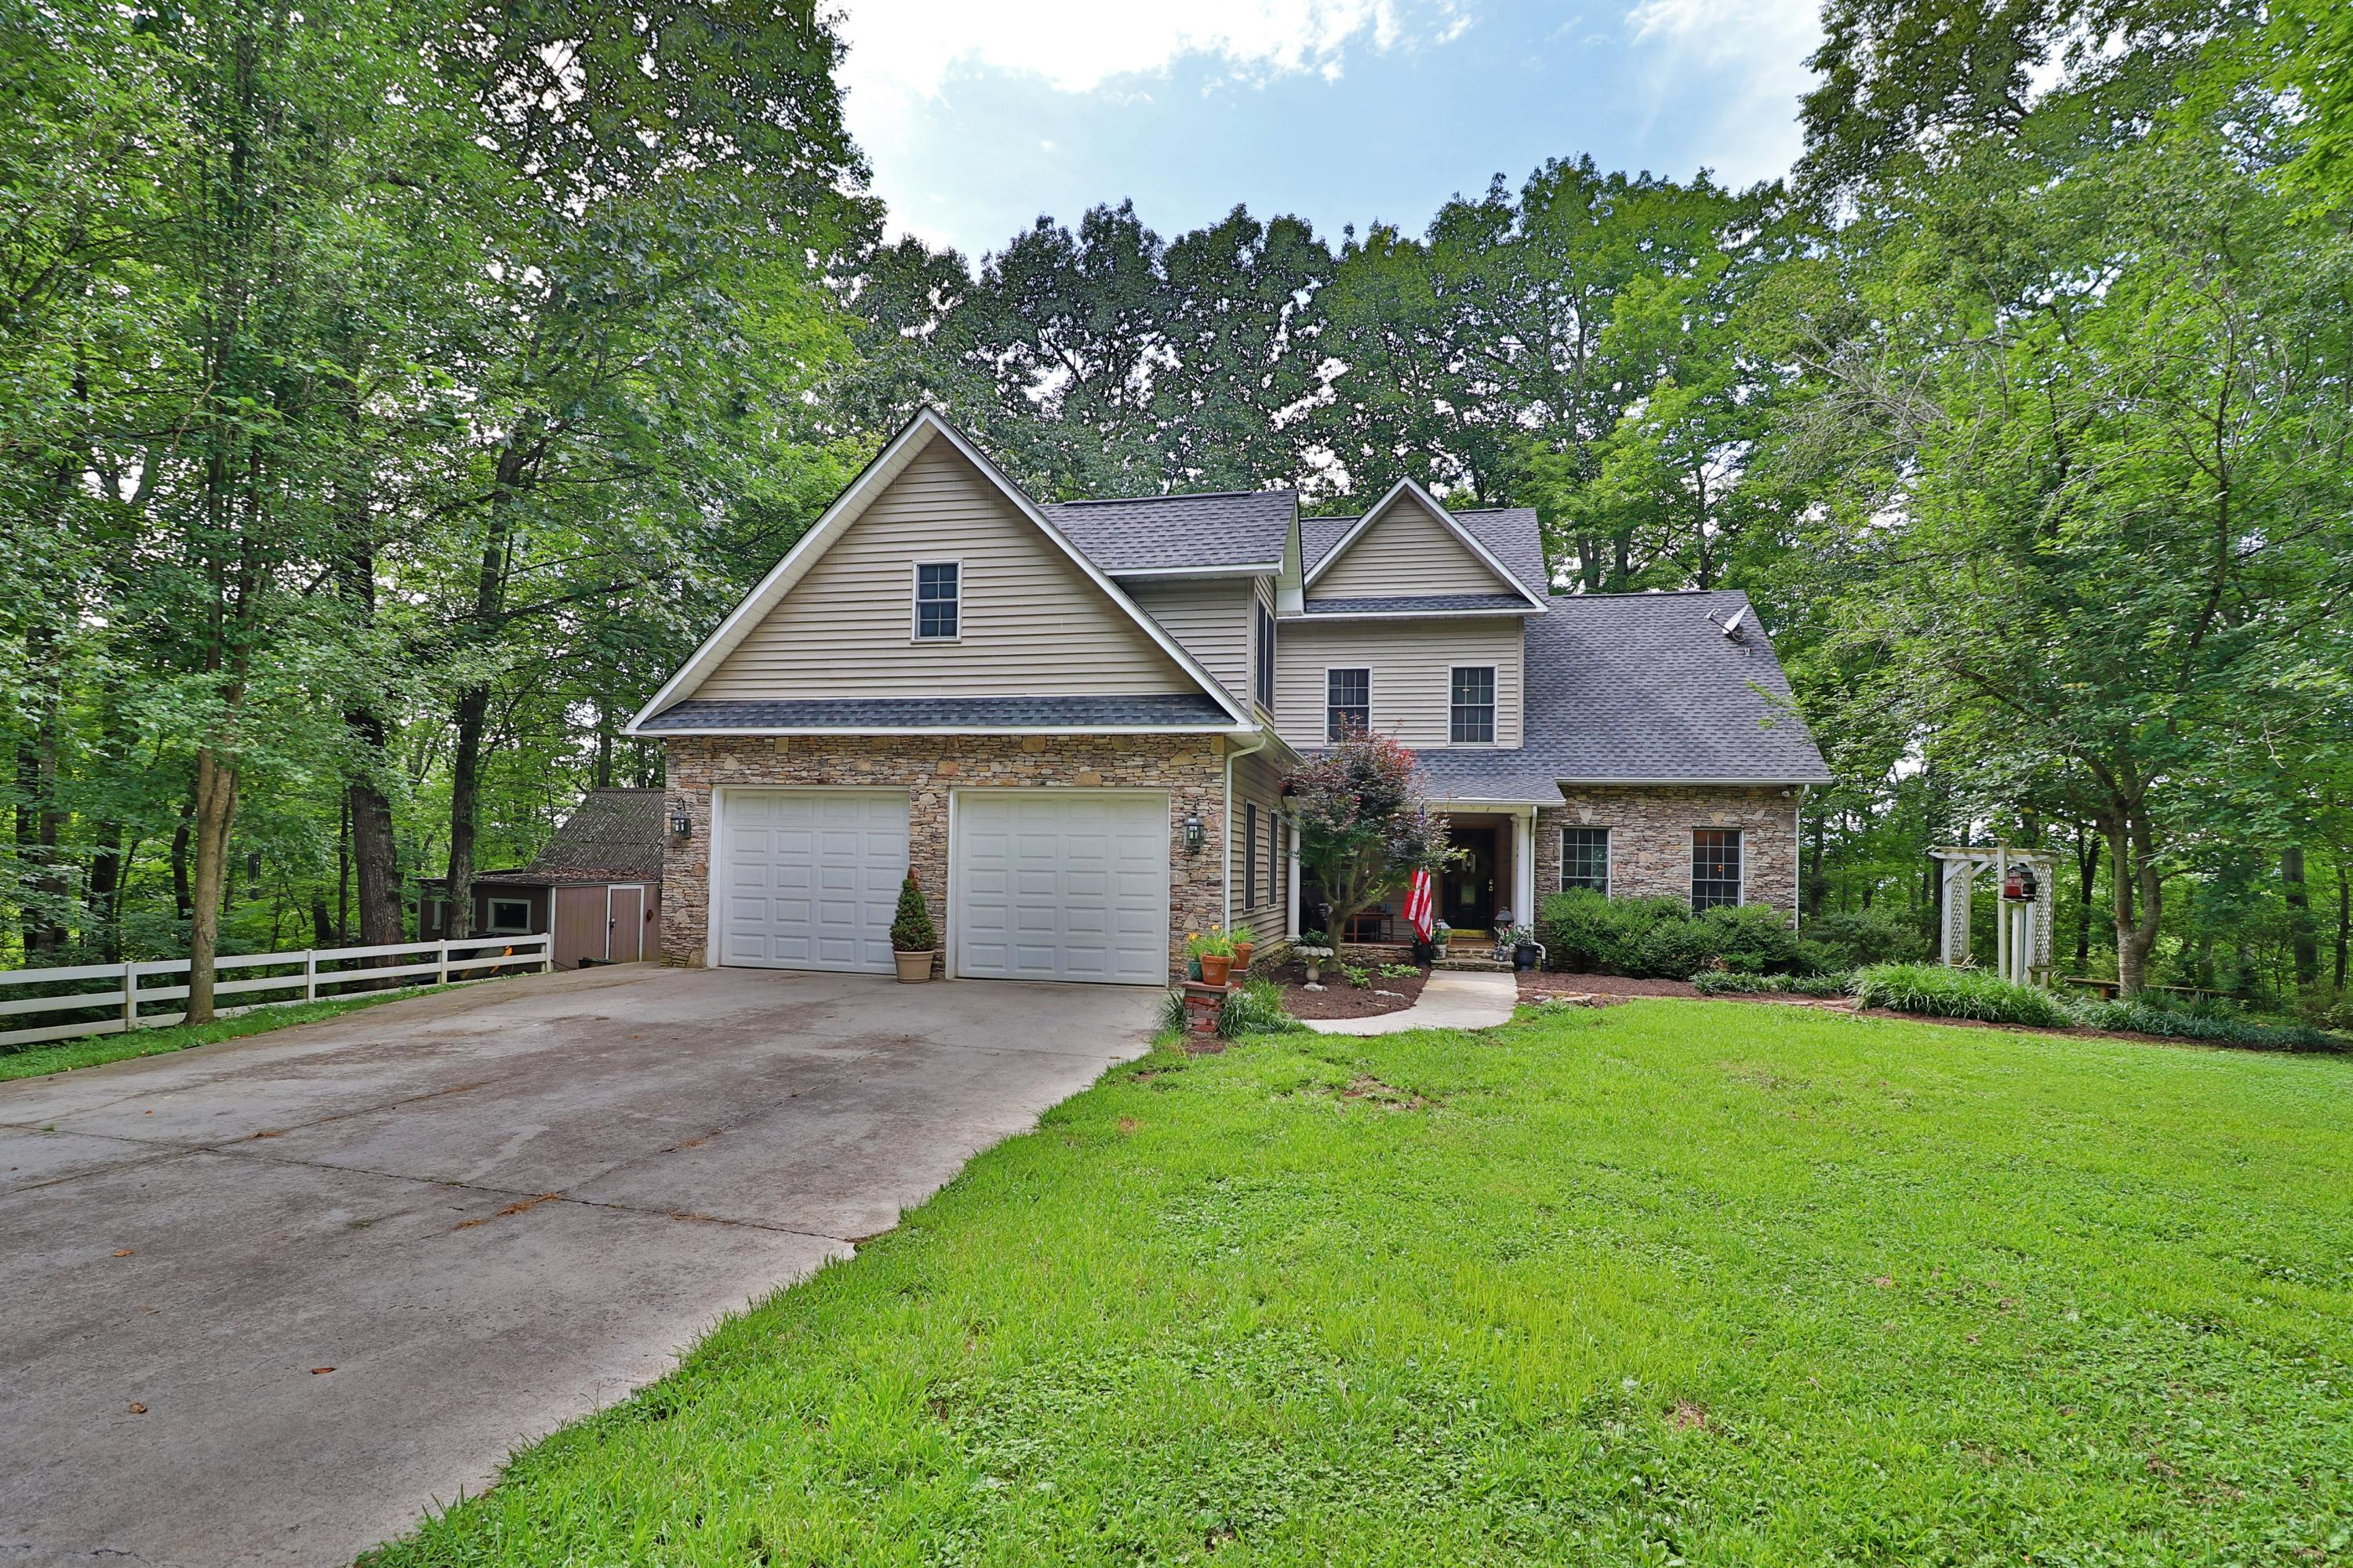 20190719235141672468000000-o Clinton anderson county homes for sale